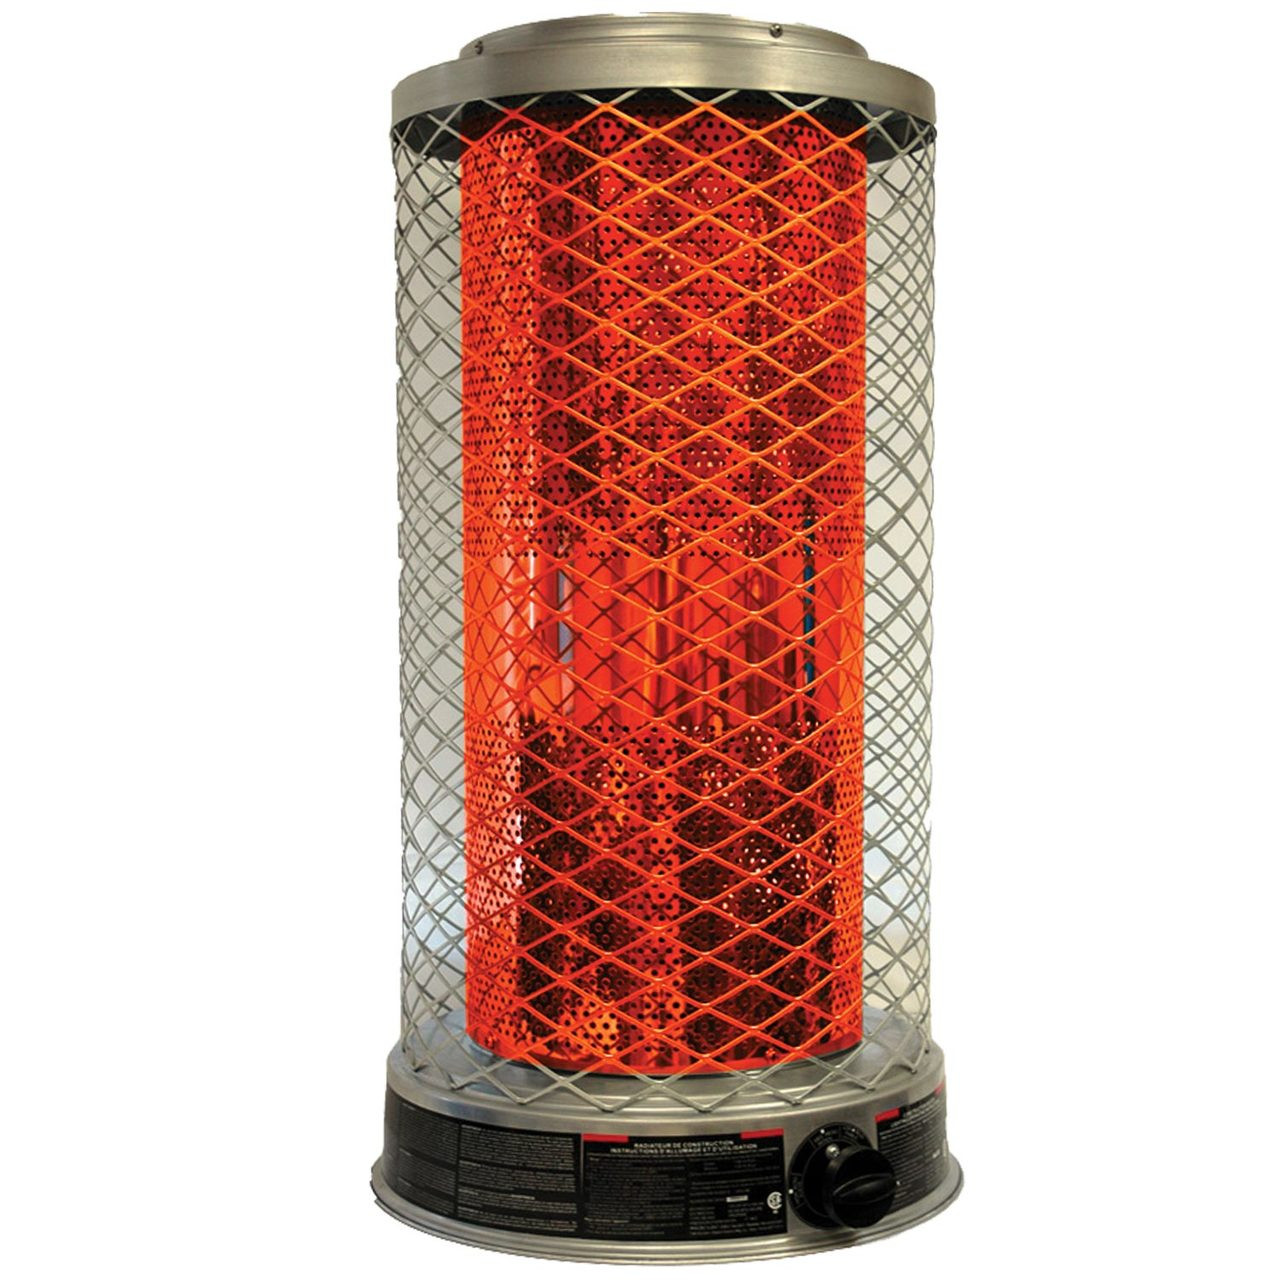 Radiant Heater Dura Heat 100 000 Btu Natural Gas Ng Radiant Heater Ra100ngdgd